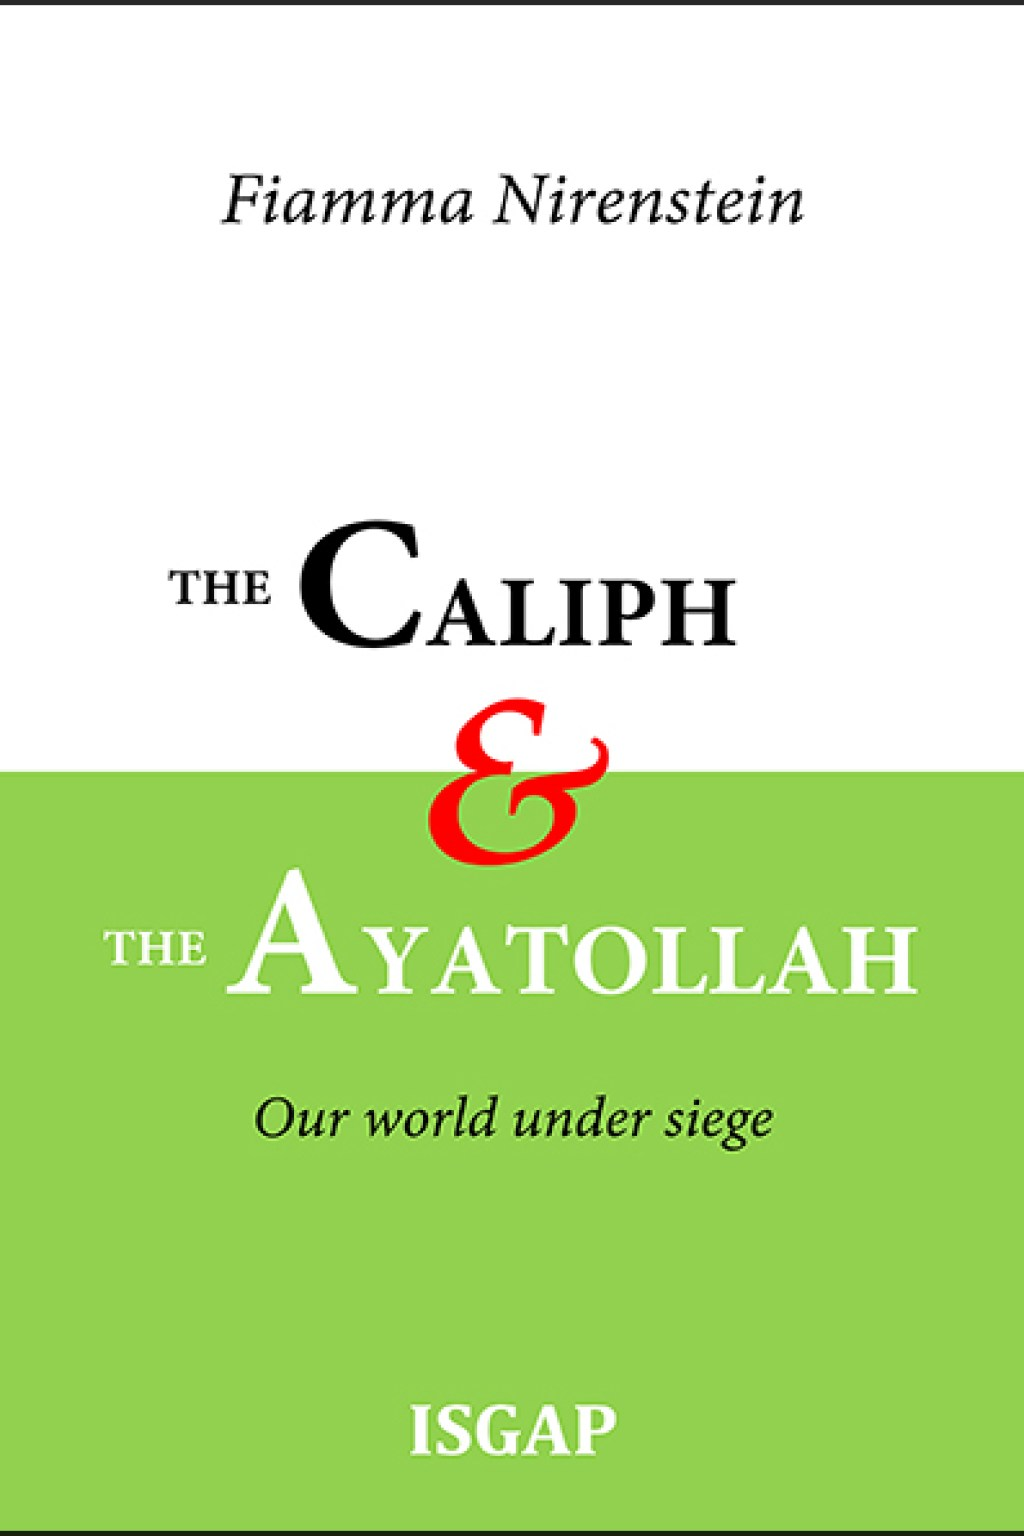 The Caliph & the Ayatollah